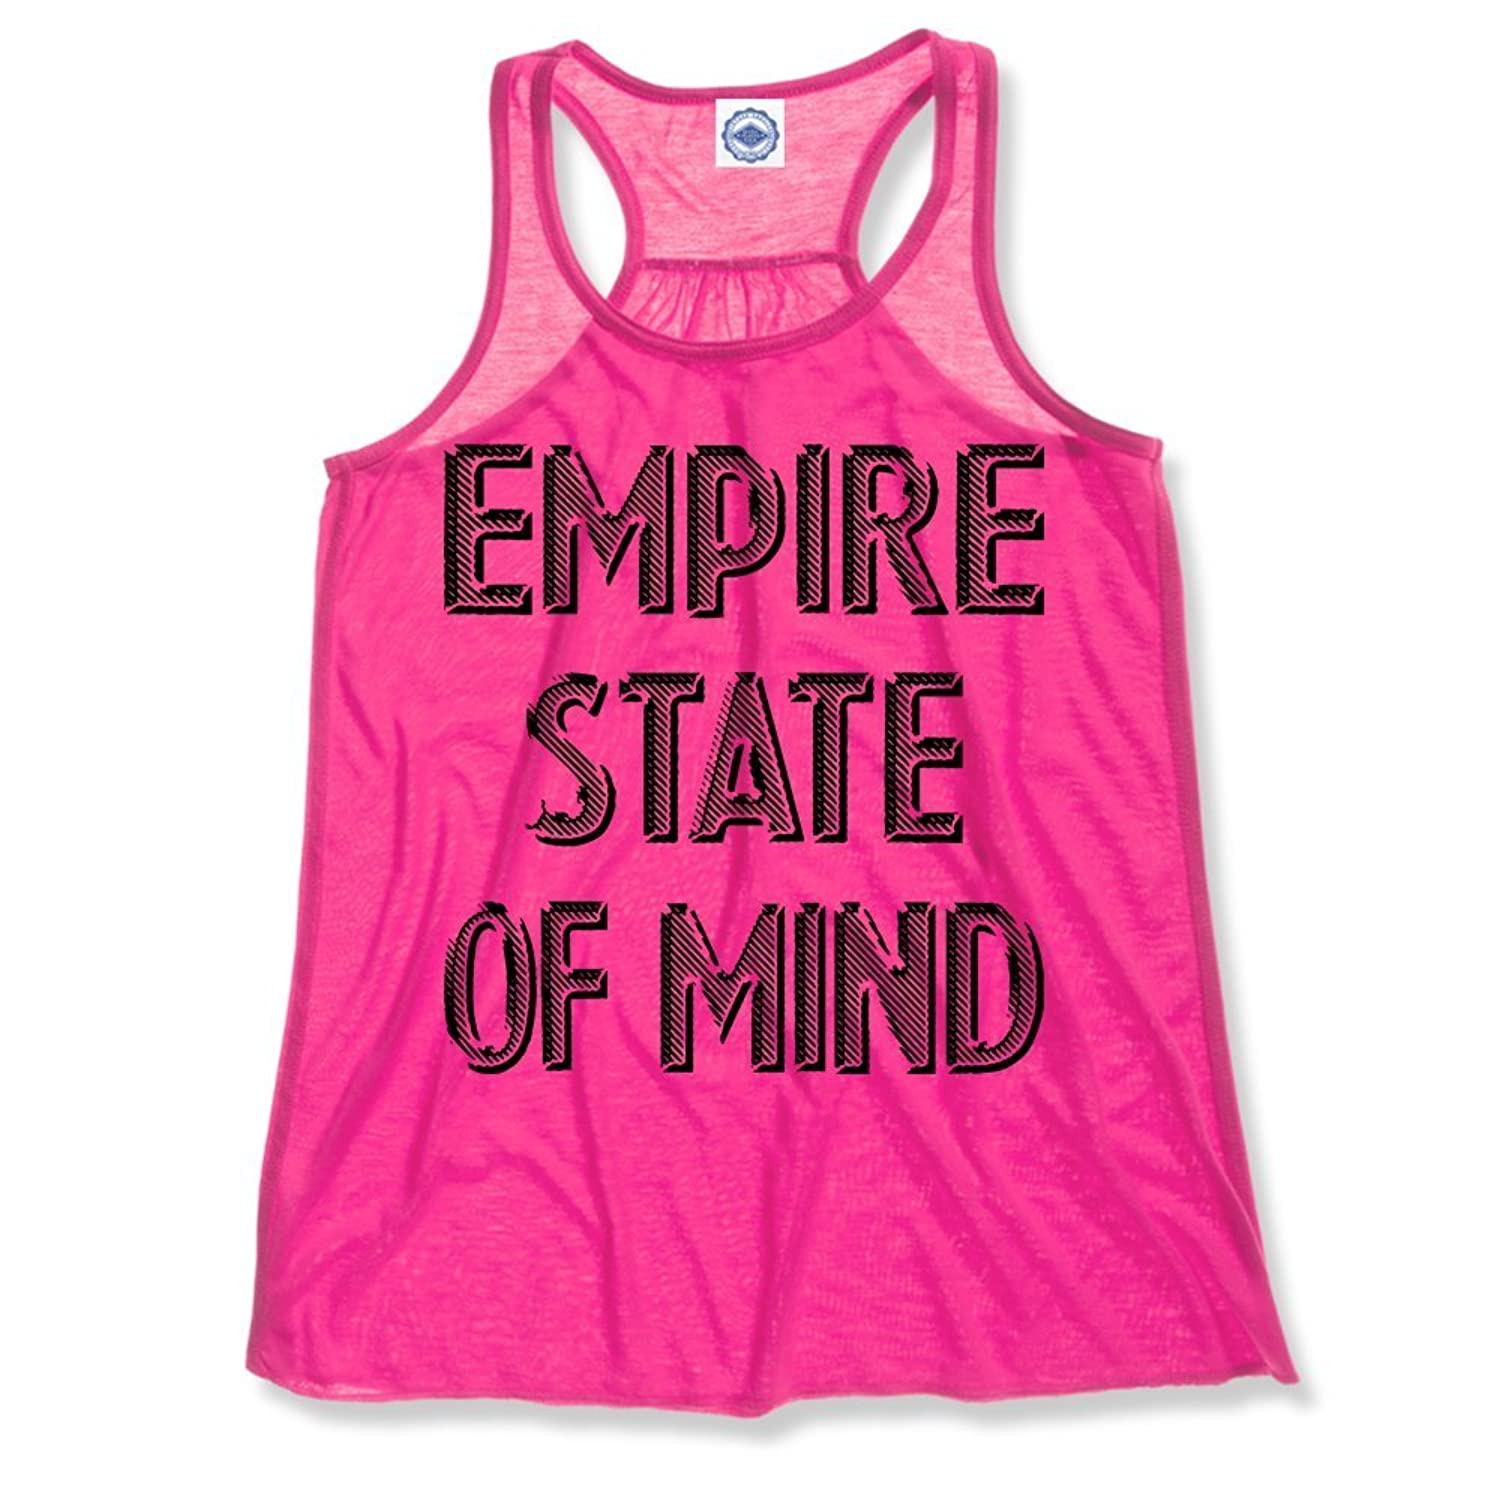 Hank Player 'Empire State Of Mind' Women's Draped Racerback Tank